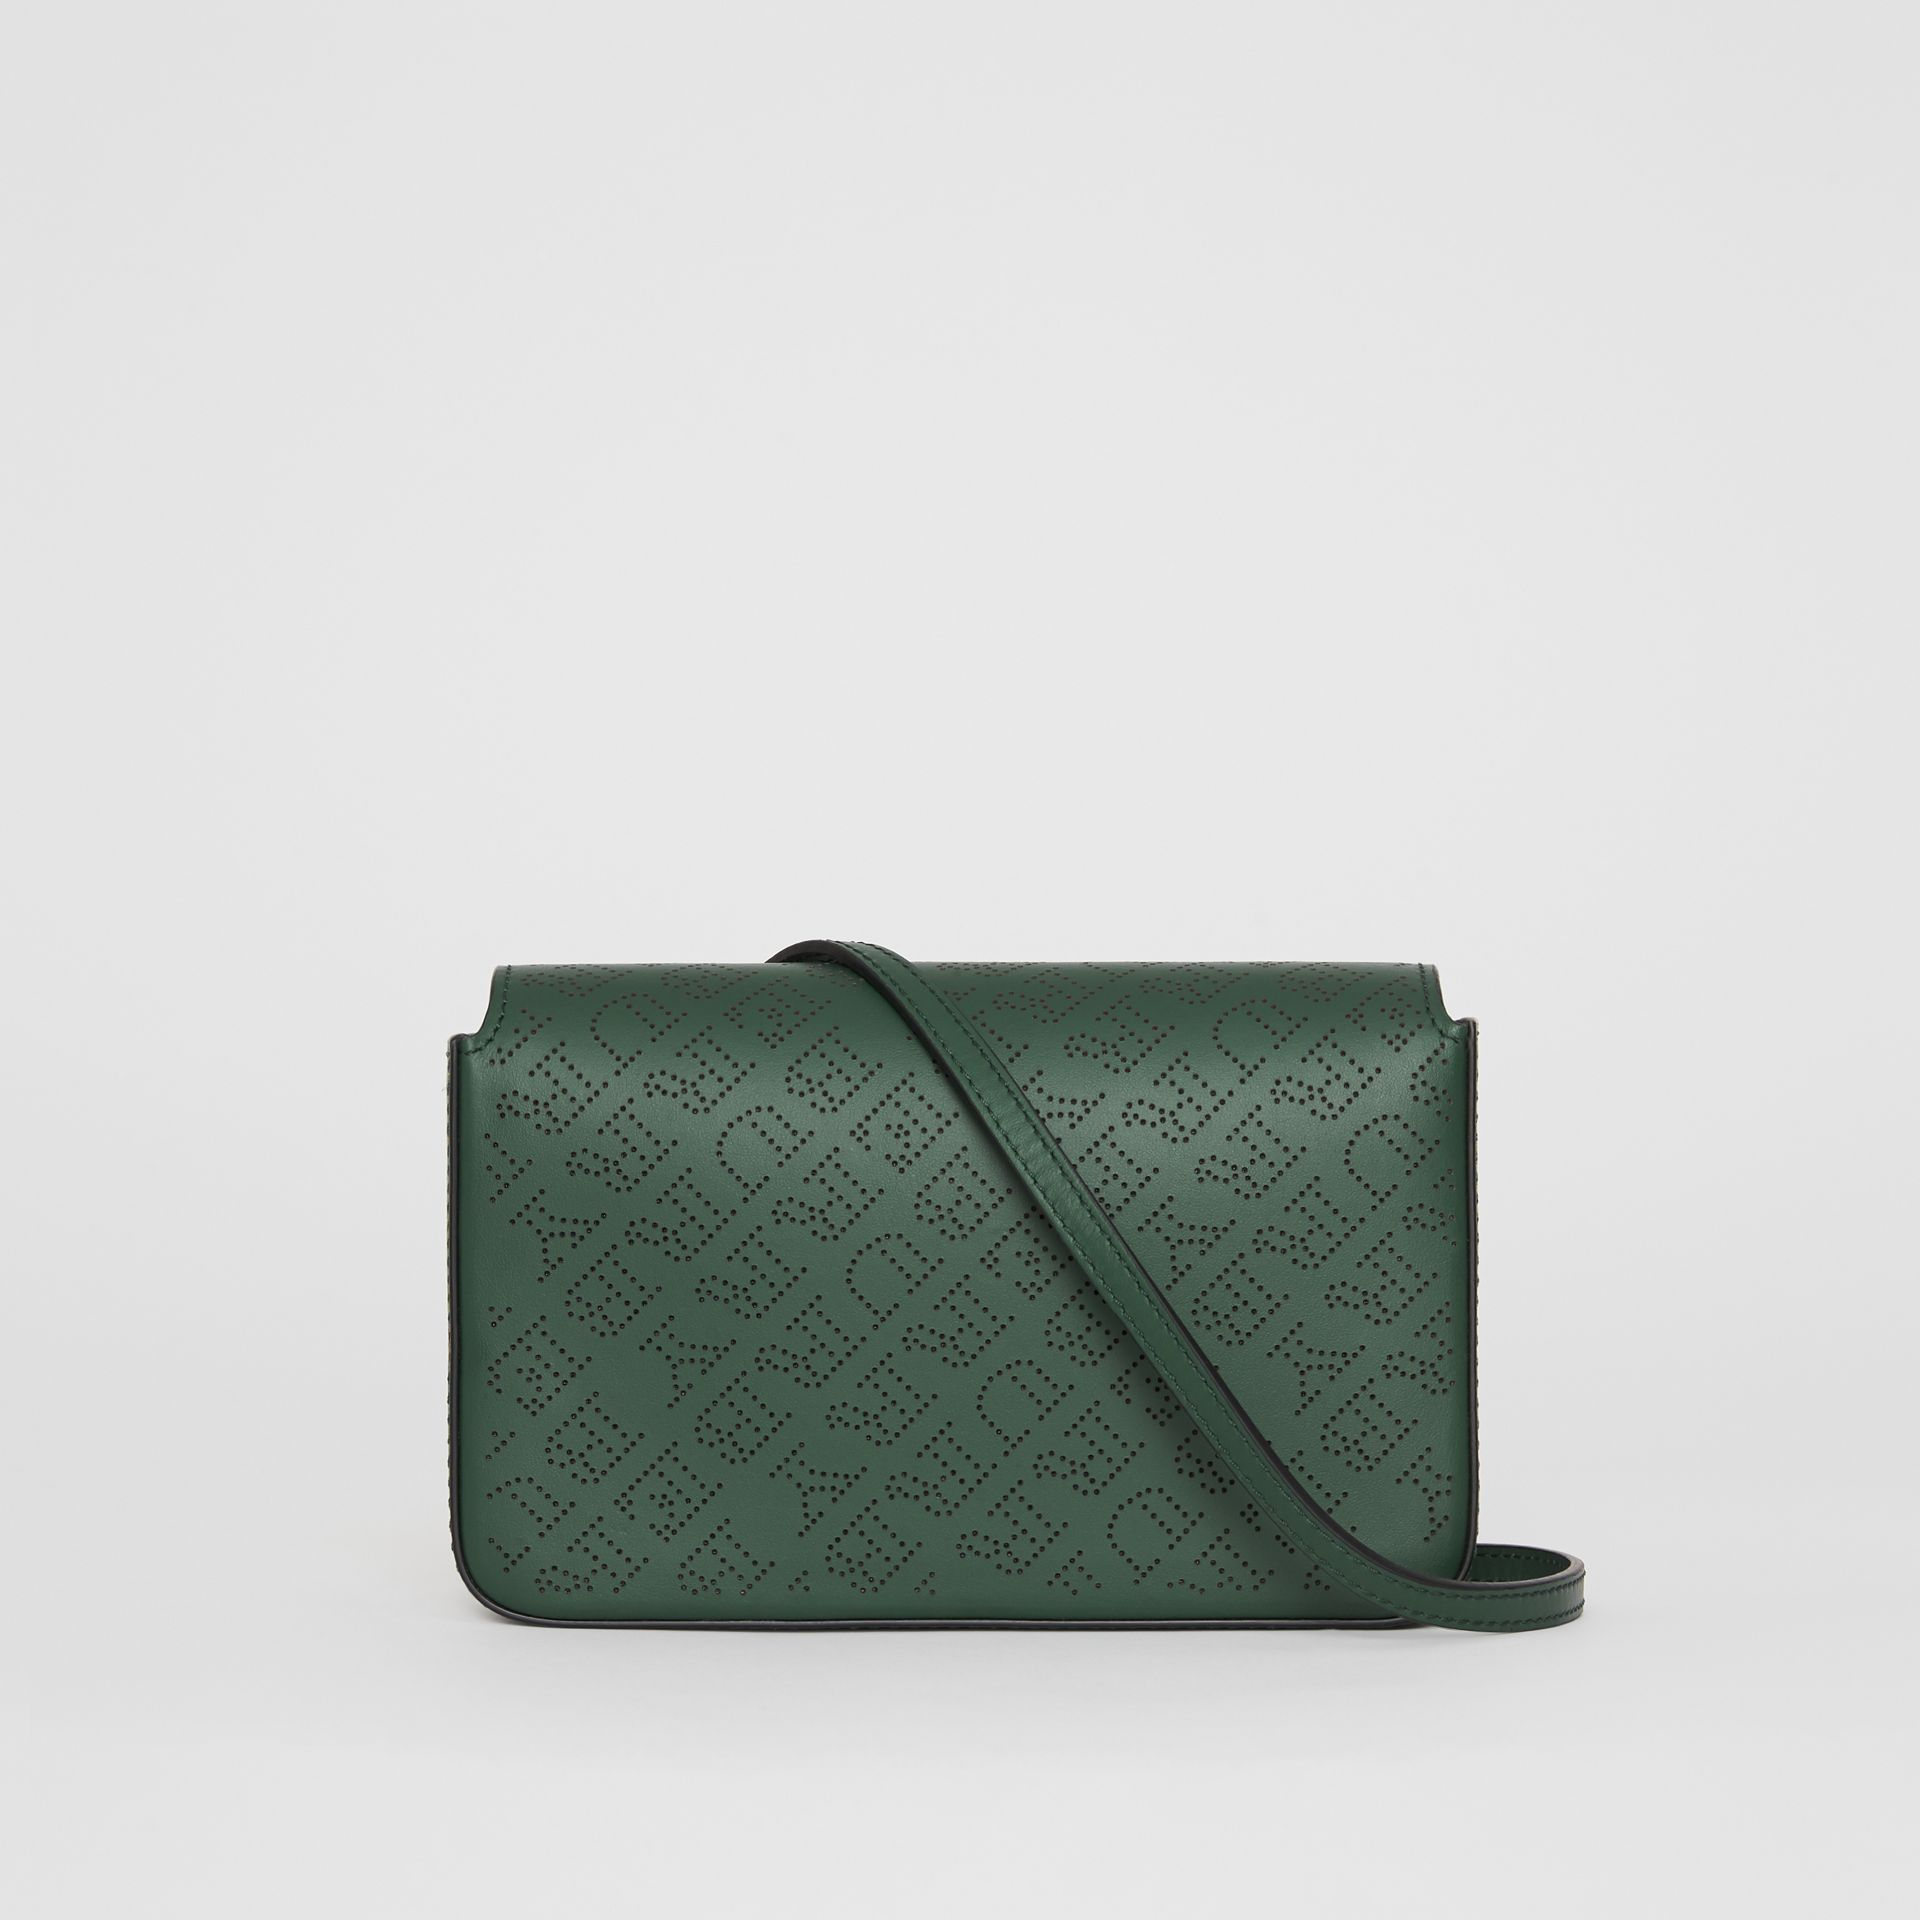 Perforated Logo Leather Wallet with Detachable Strap in Vintage Green - Women | Burberry Singapore - gallery image 0